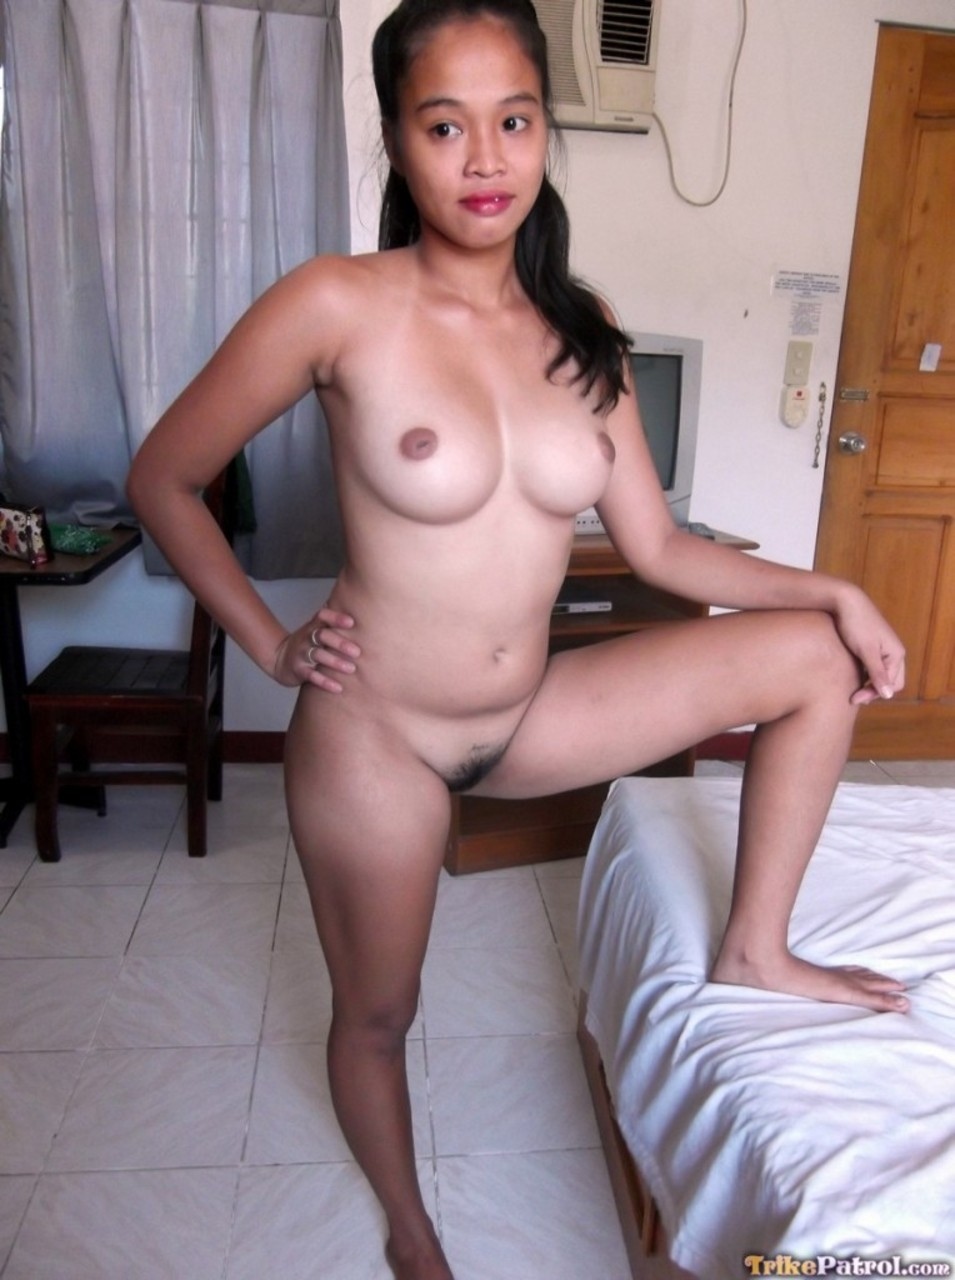 Pinay naked high quality pics